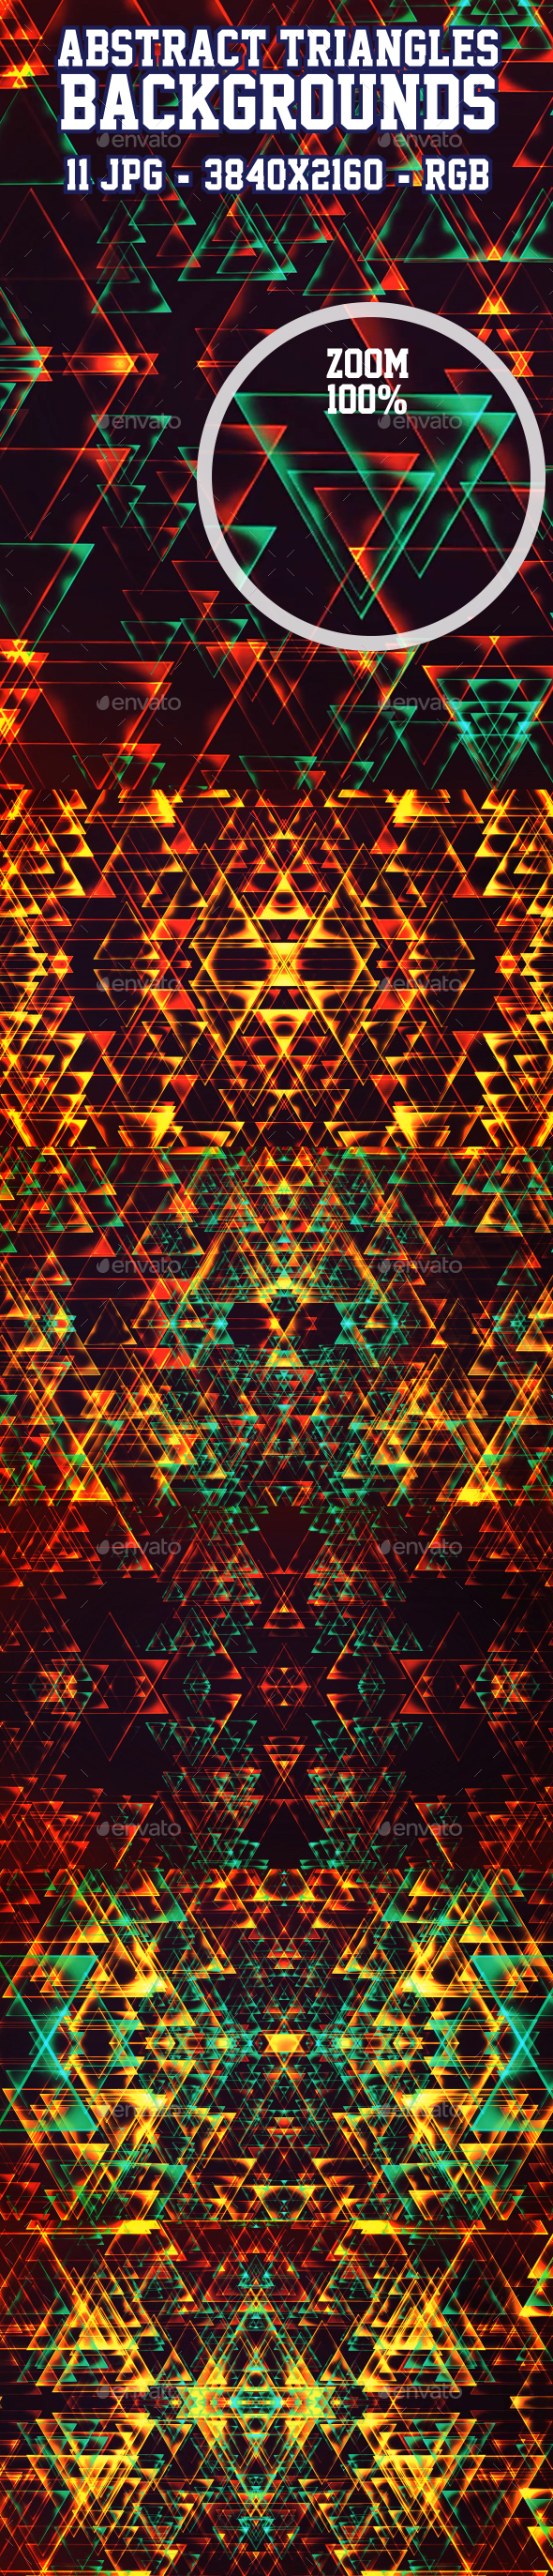 Abstract Triangles Backgrounds 11 in 1 - Abstract Backgrounds